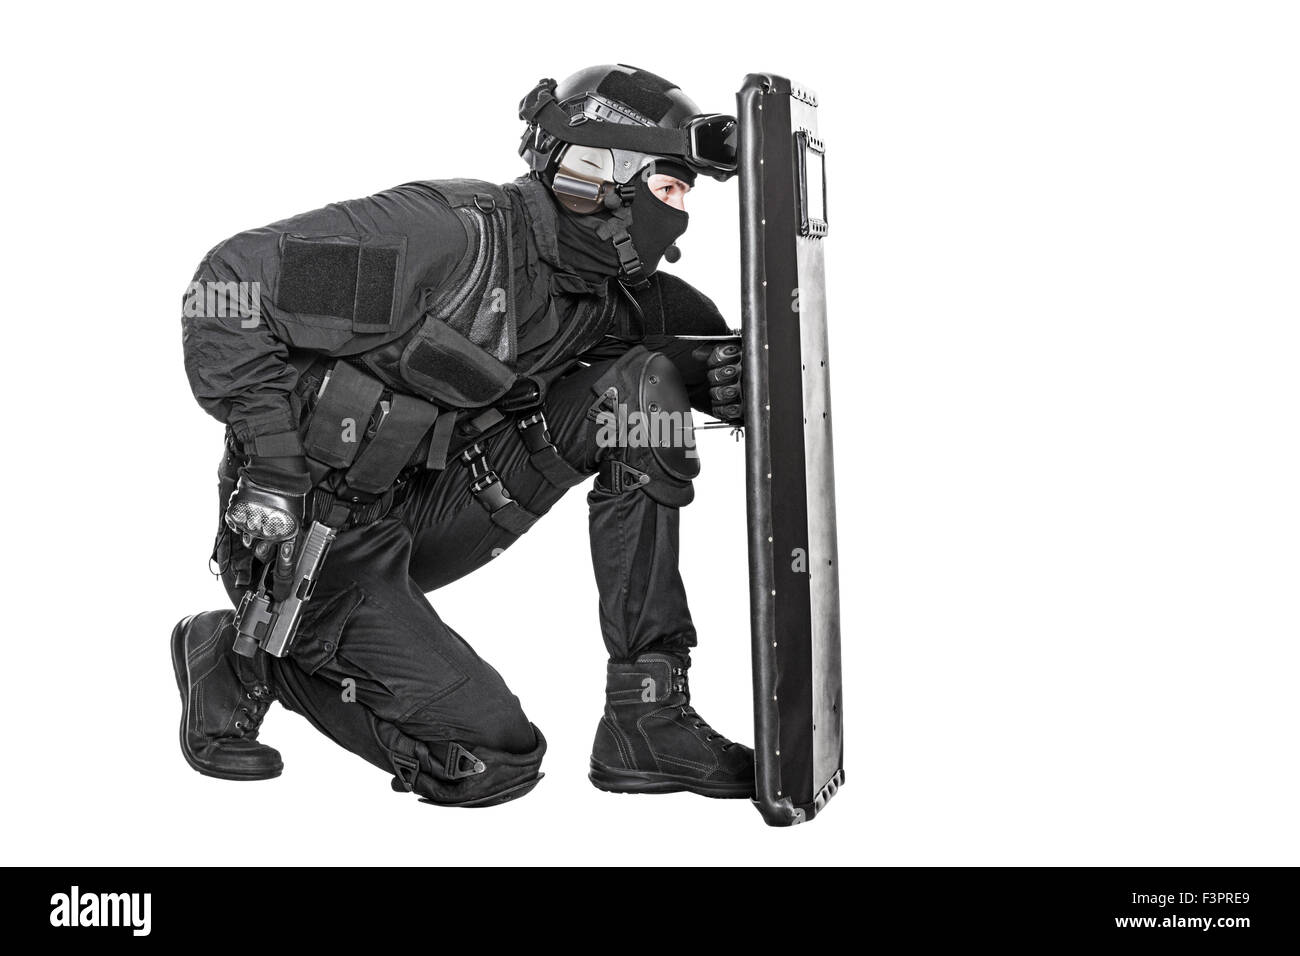 SWAT officer with ballistic shield Stock Photo: 88397185 - Alamy